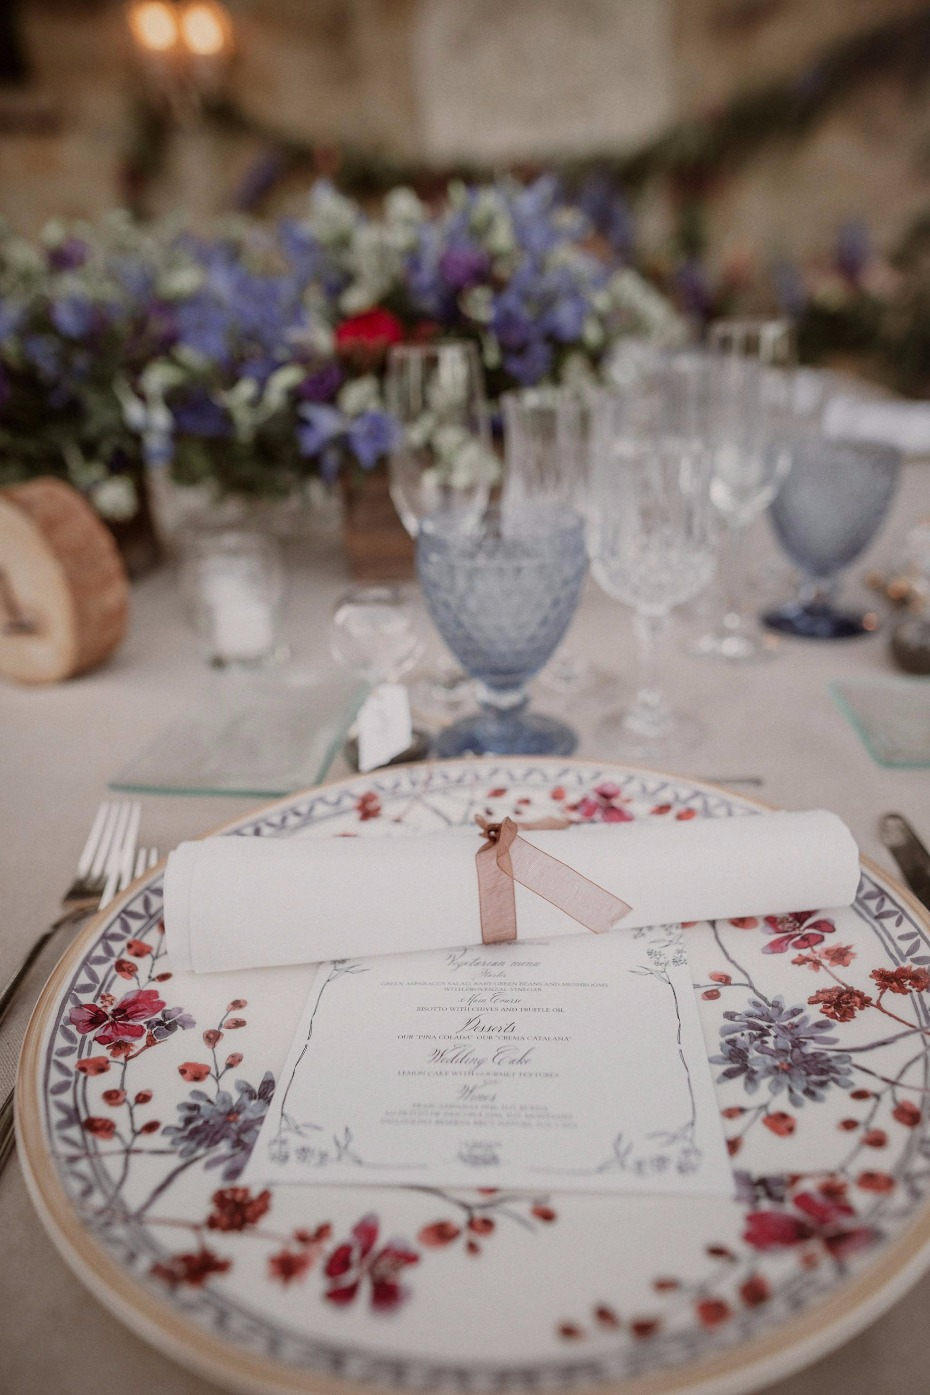 Vintage china for the reception